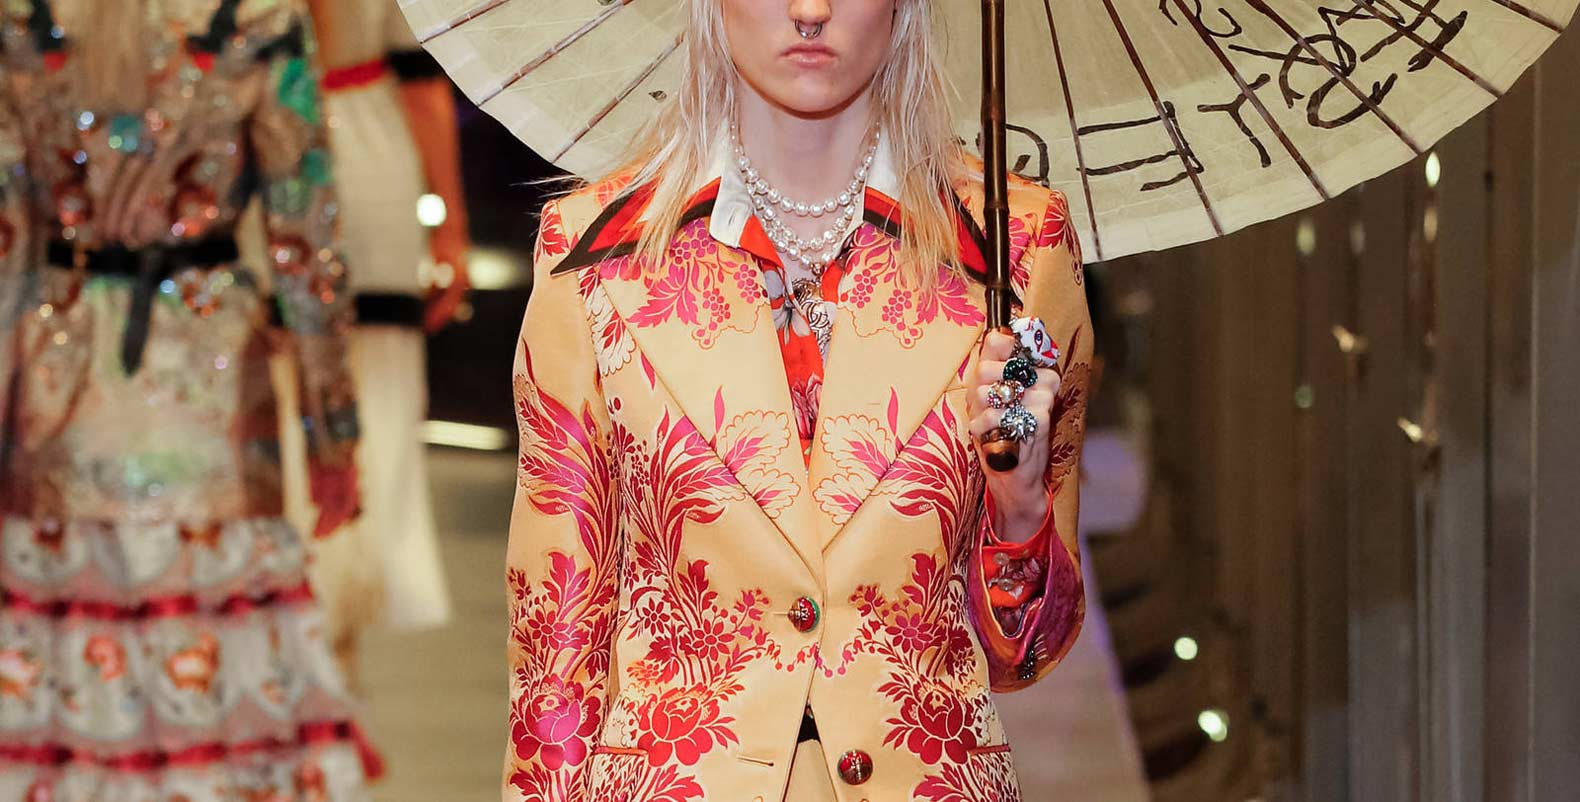 gucci-fall-winter-2017-fw17-rtw-ready-to-wear-collection-parasol-dress